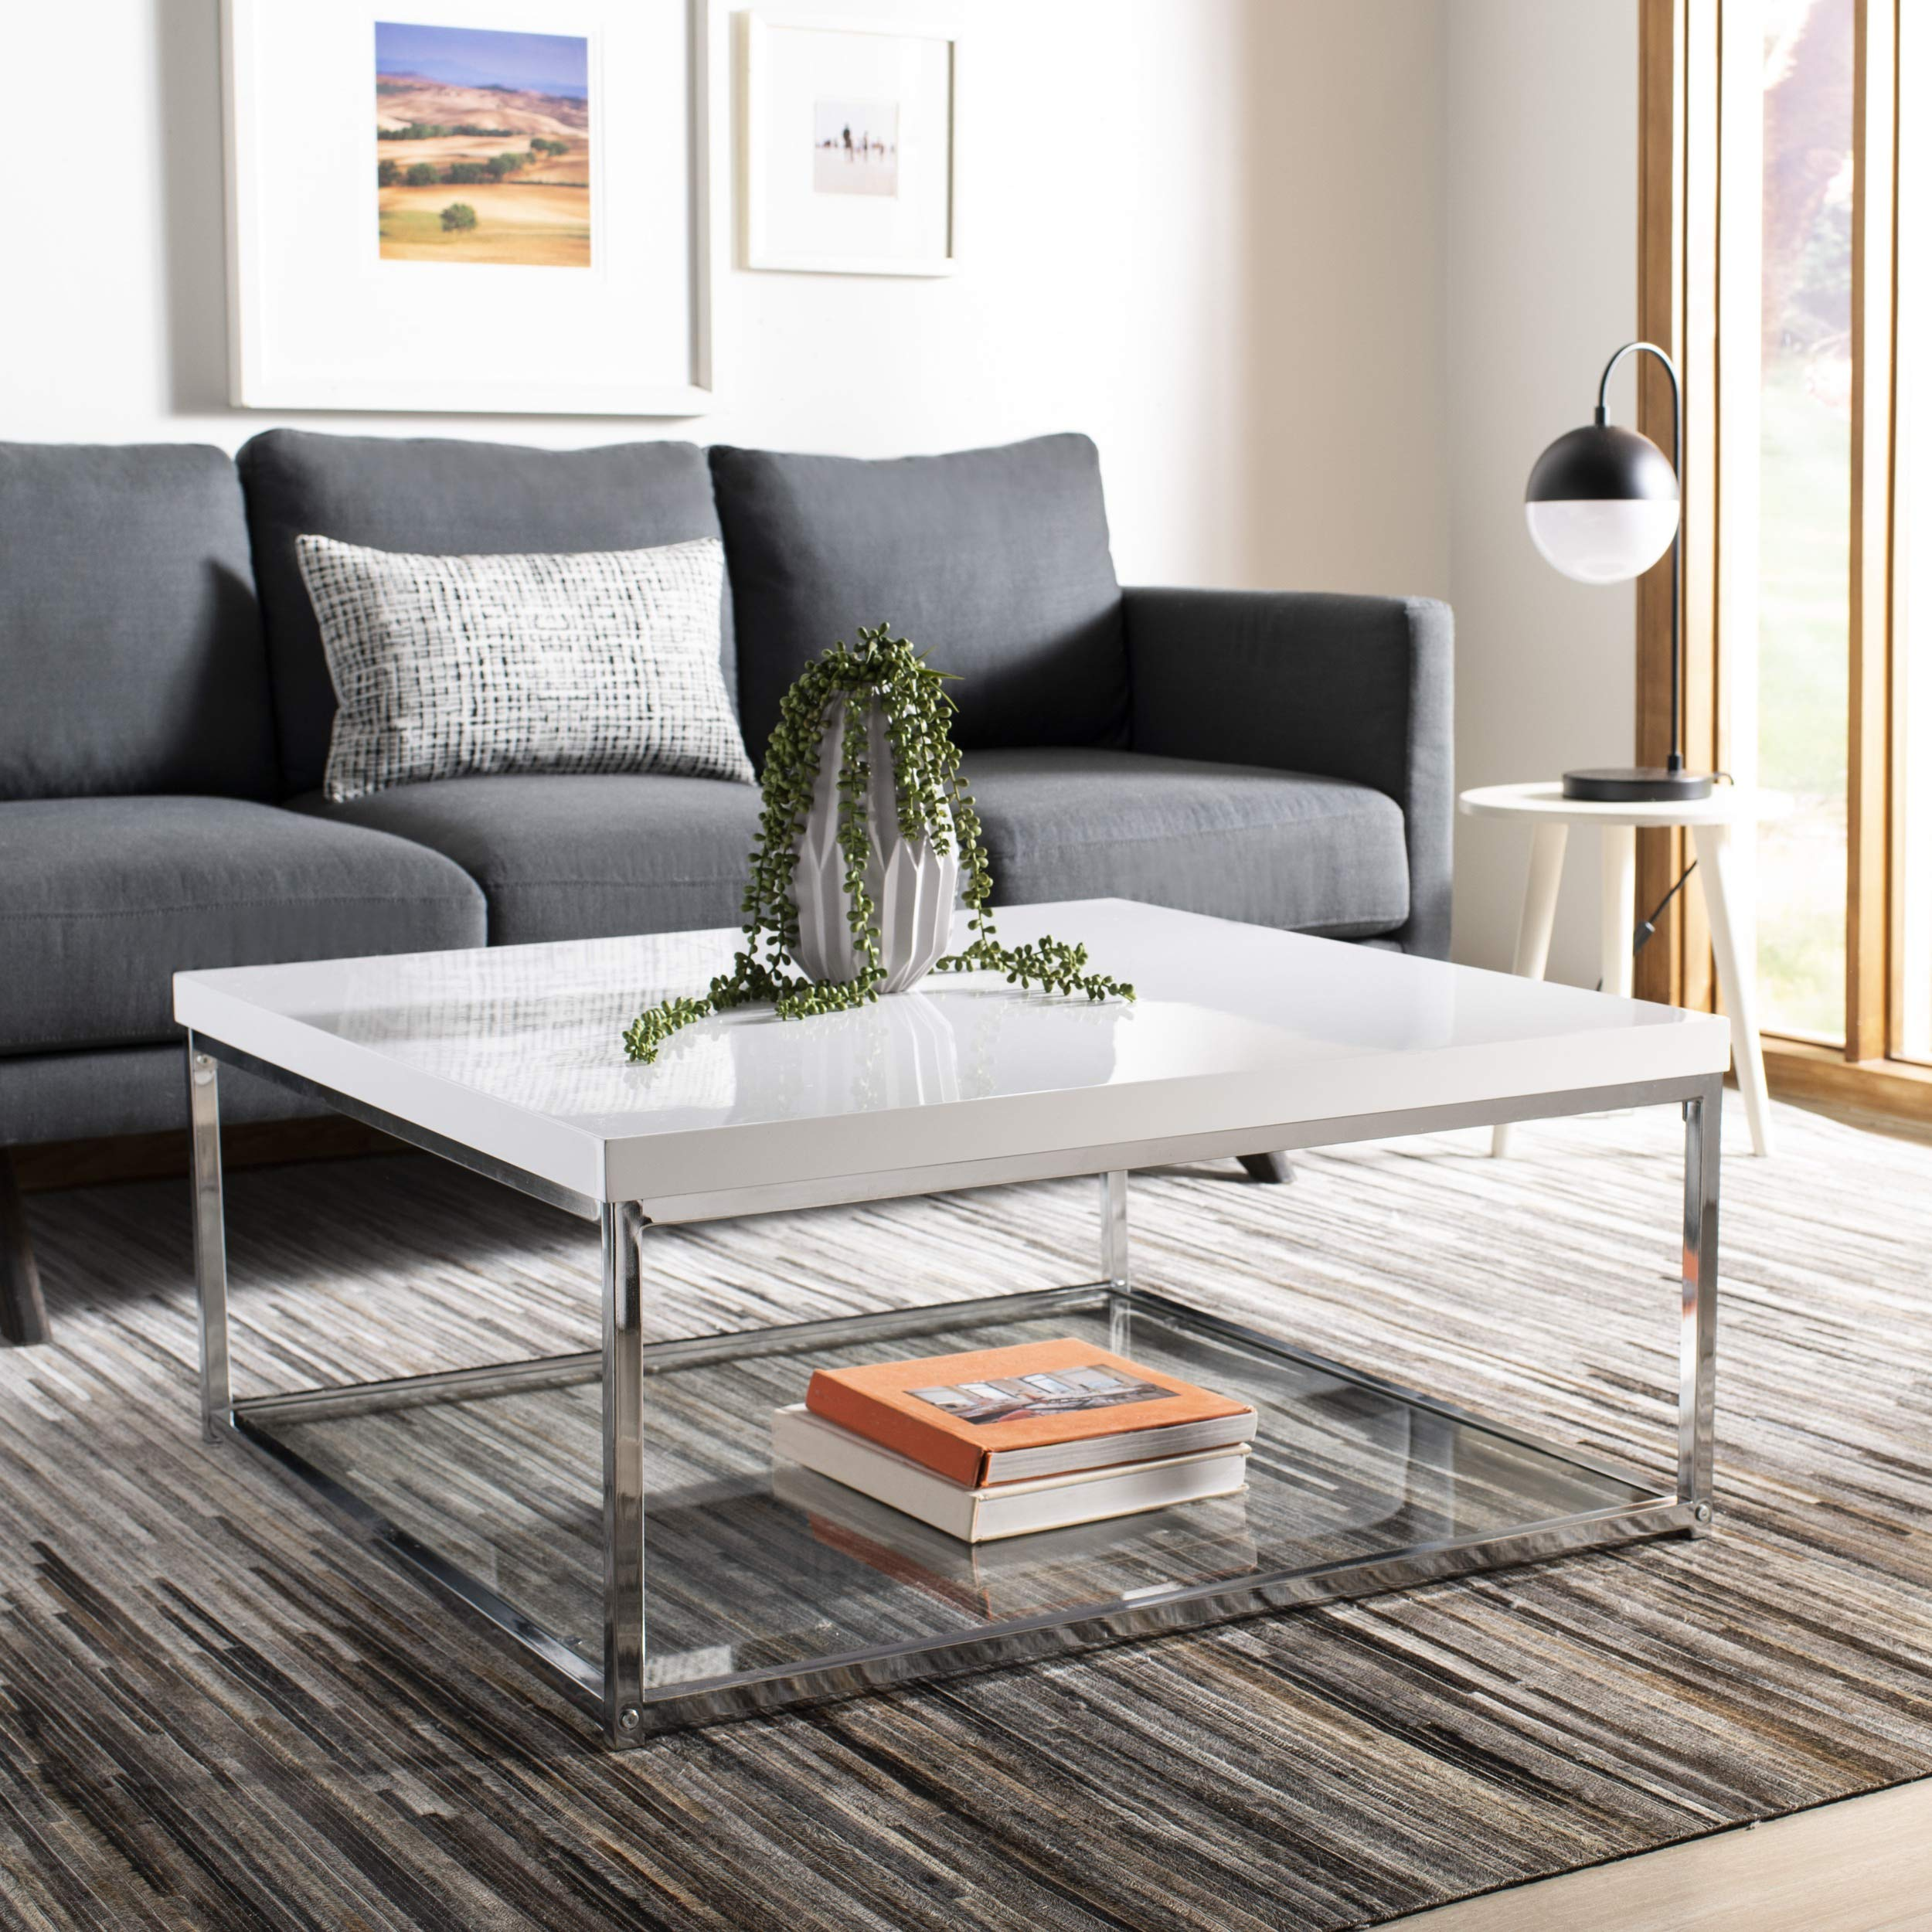 Safavieh Home Collection Malone White and Chrome Coffee Table by Safavieh